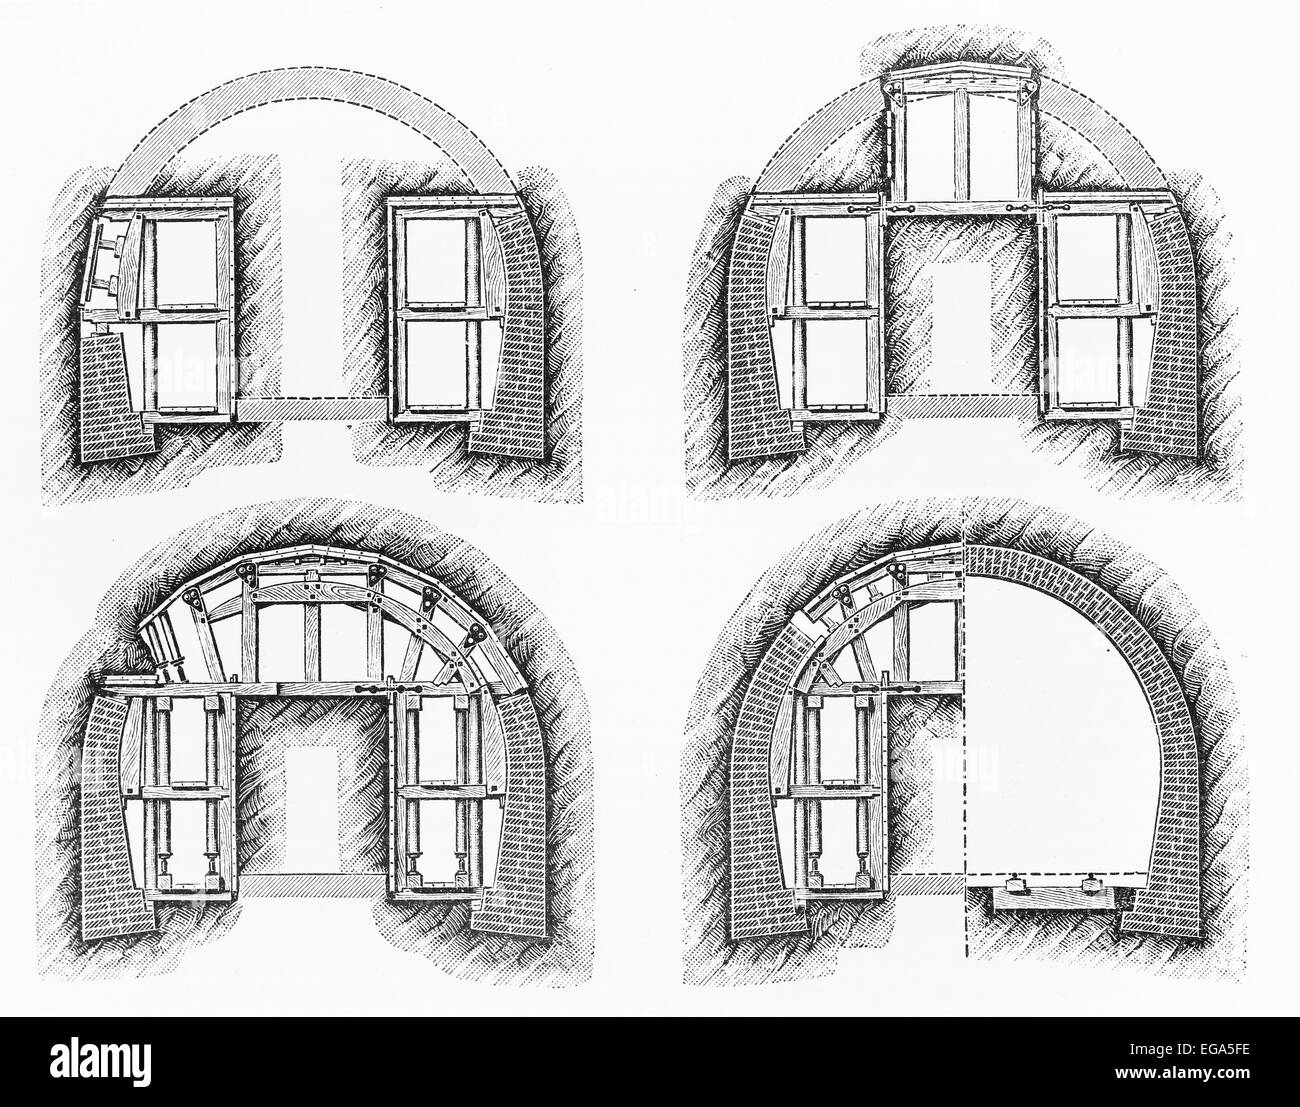 Vintage drawing representing a French design tunnel from 19th century - Stock Image